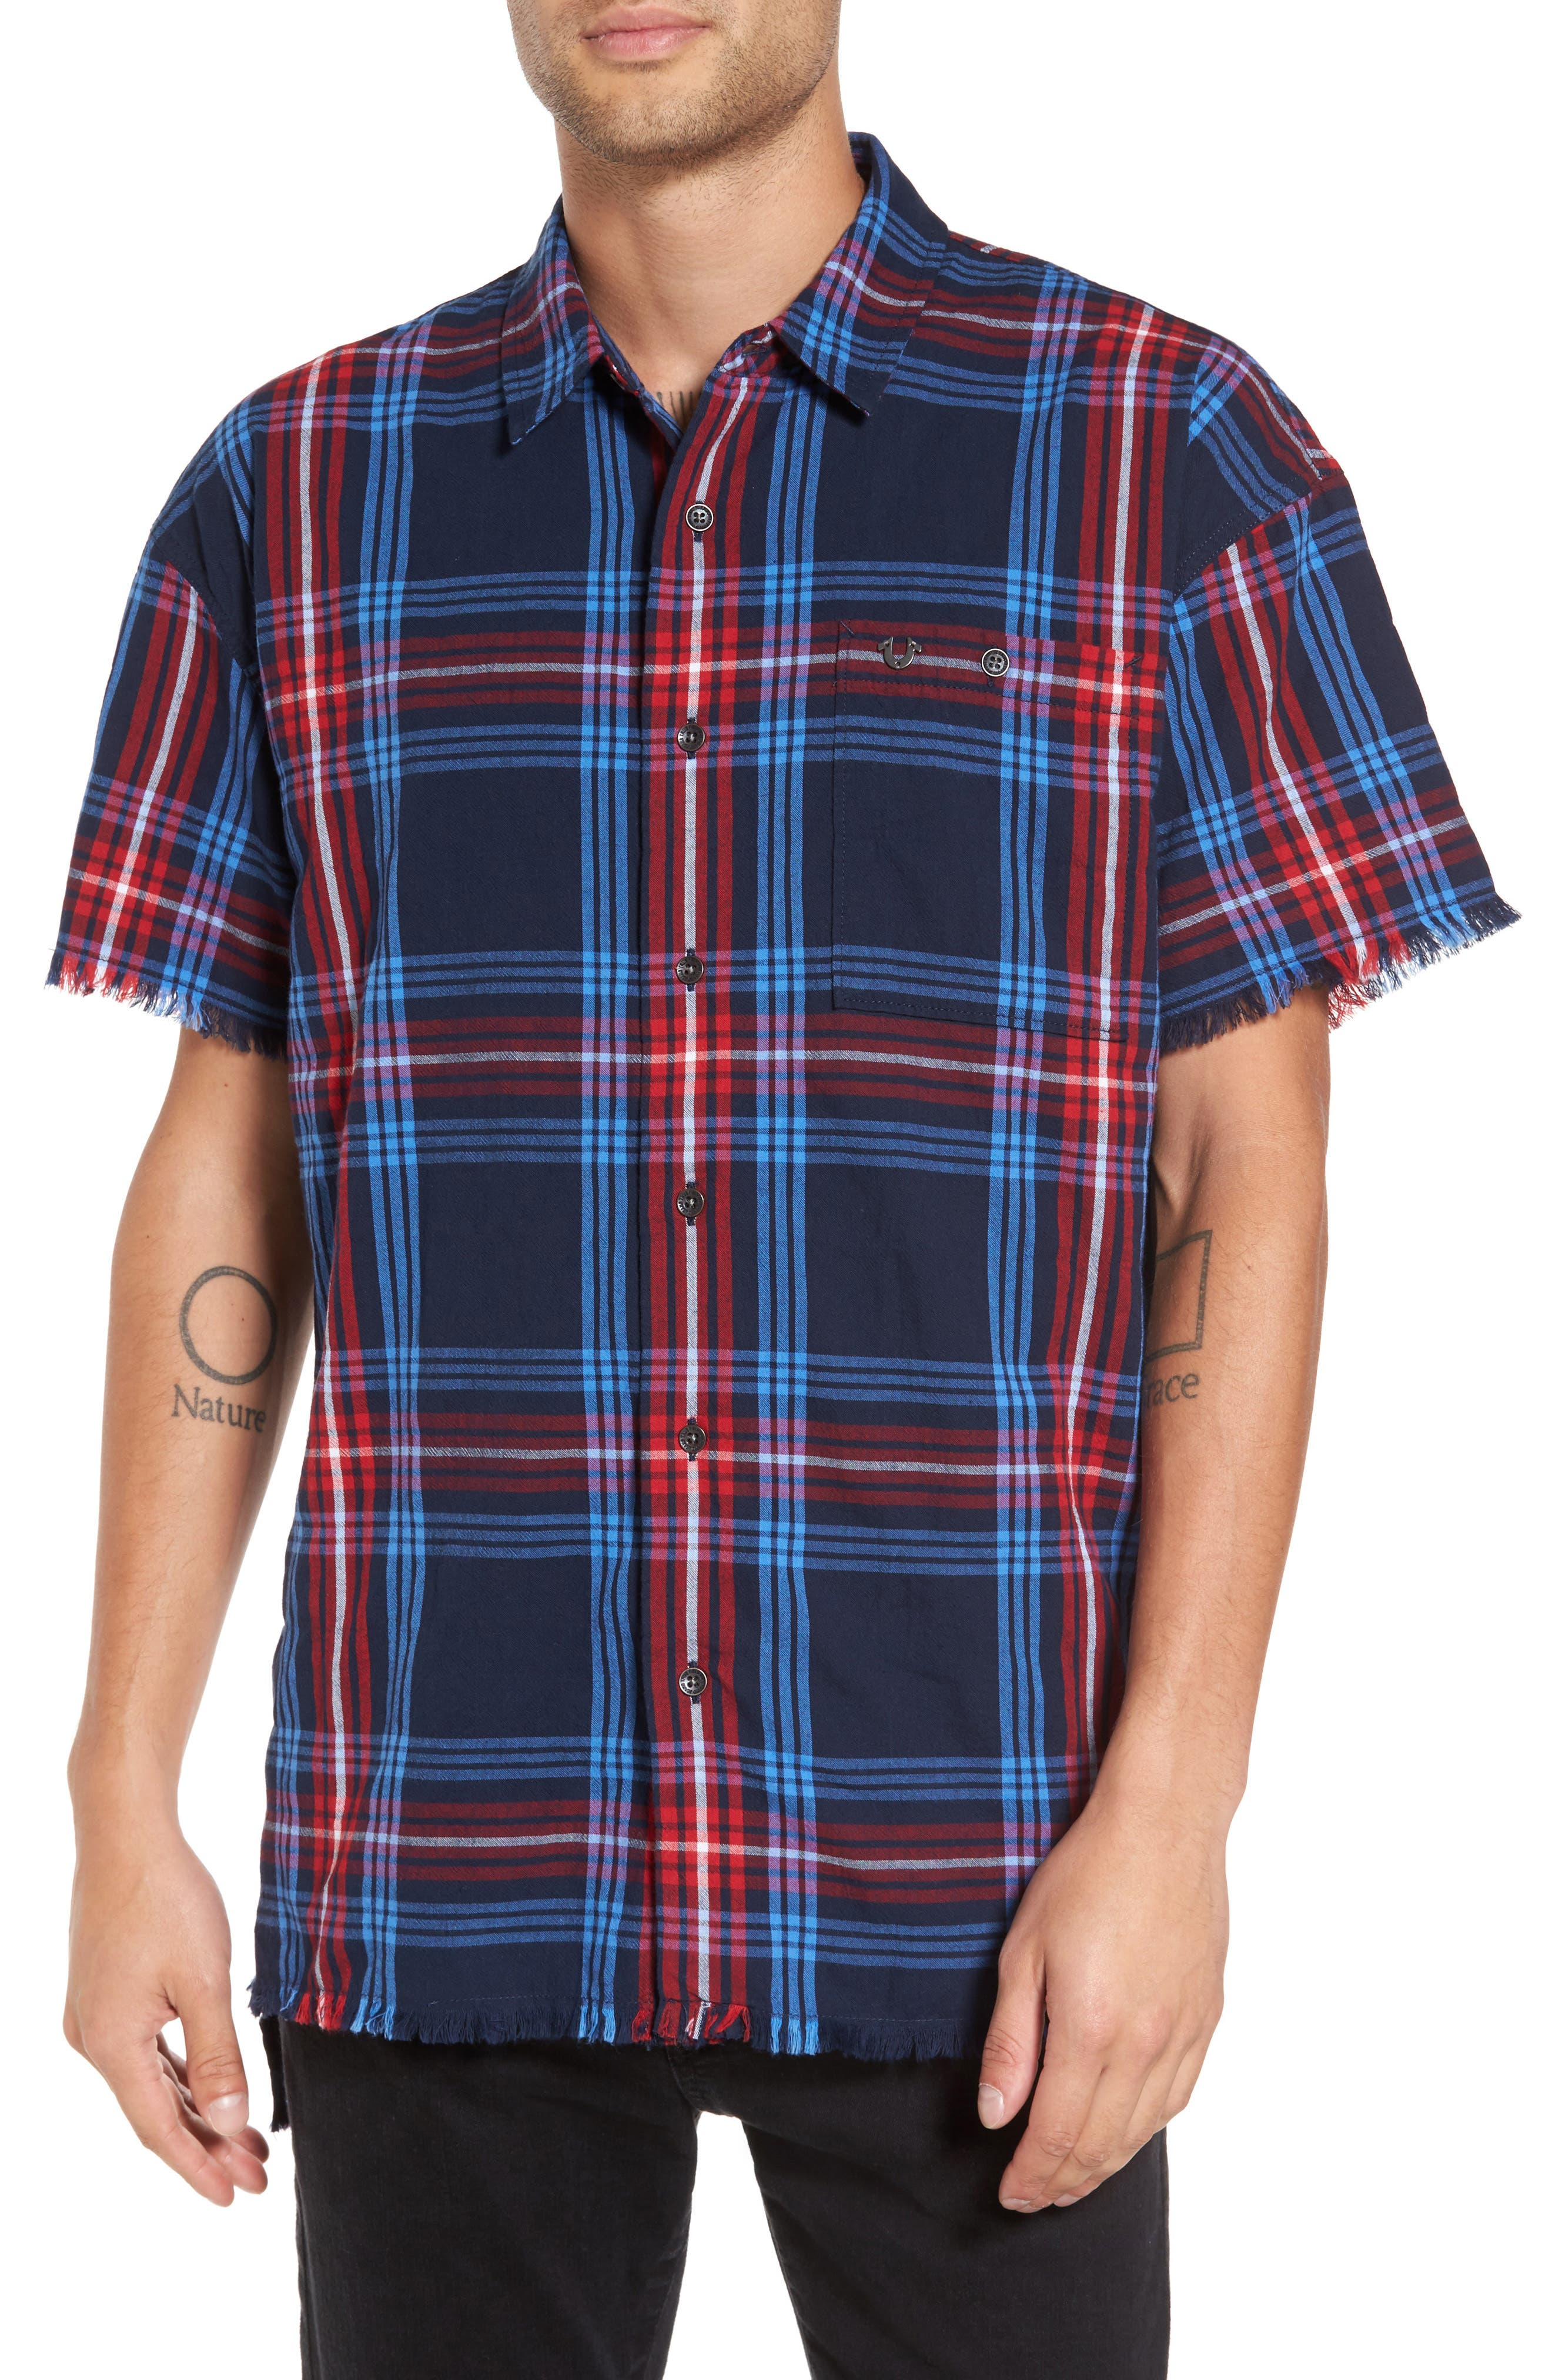 Alternate Image 1 Selected - True Religion Brand Jeans Raw Edge Plaid Woven Shirt